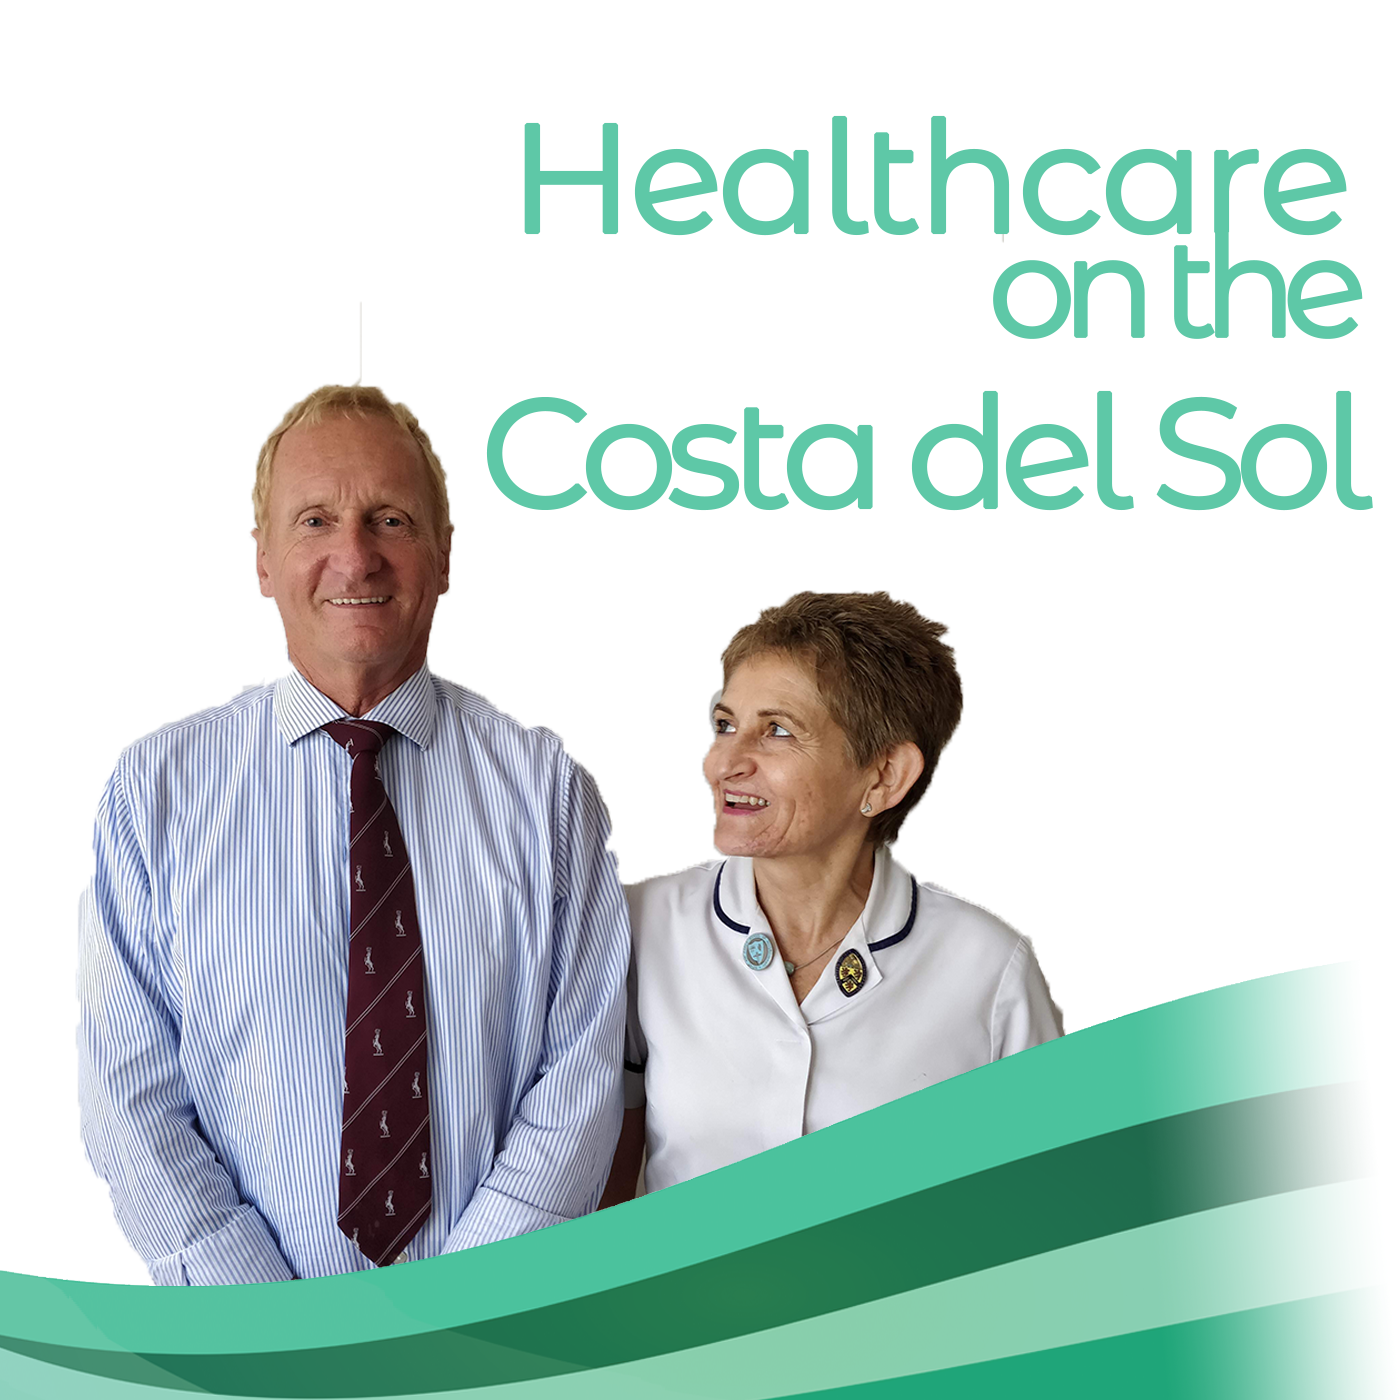 Healthcare on the Costa del Sol - Episode 11 - Hearing Changes